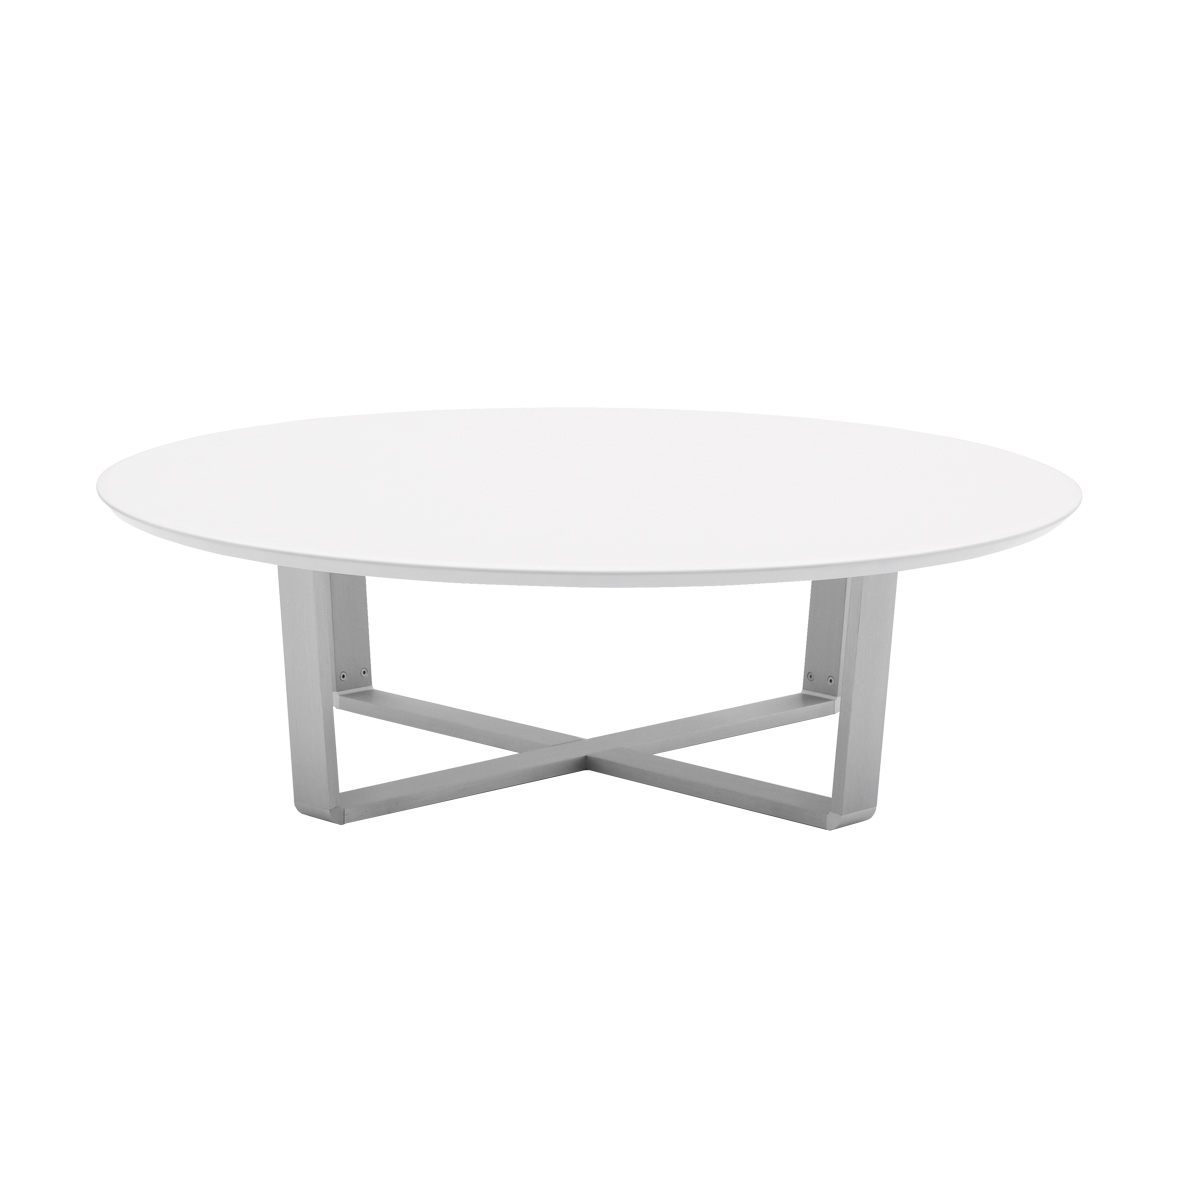 Cintura round coffee table beyond furniture Round coffee tables